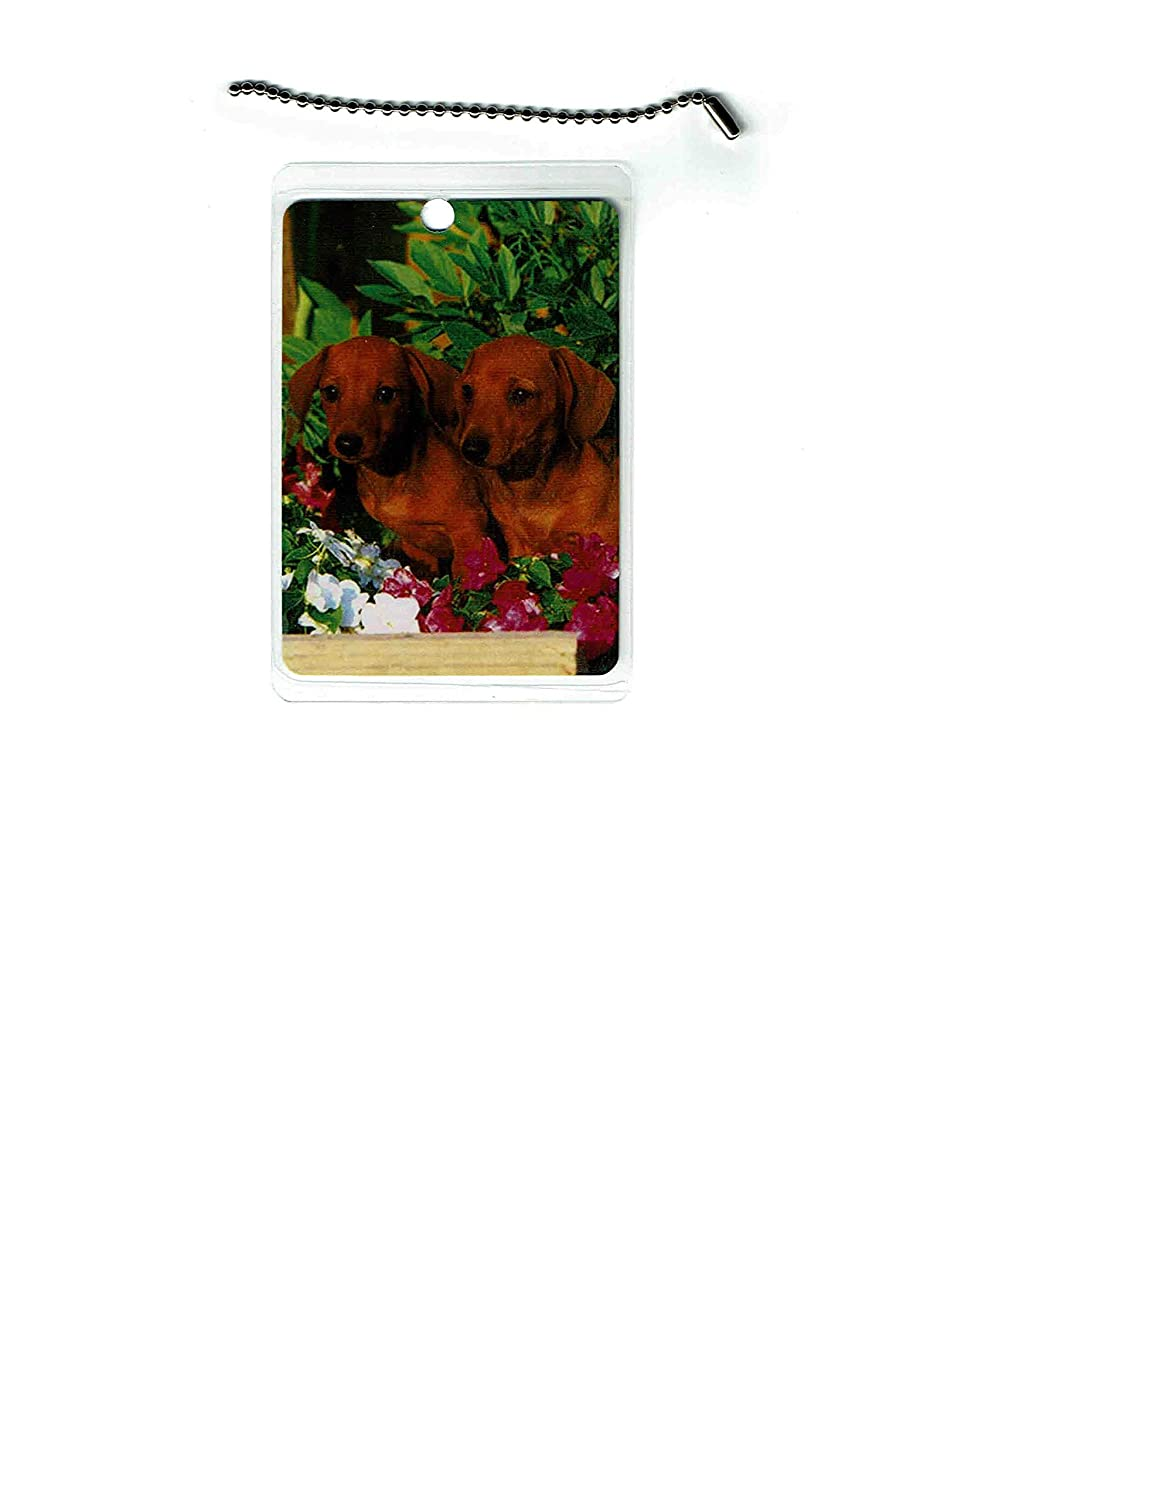 Excellent Dachshund Dog Tag Japan's largest assortment Luggage